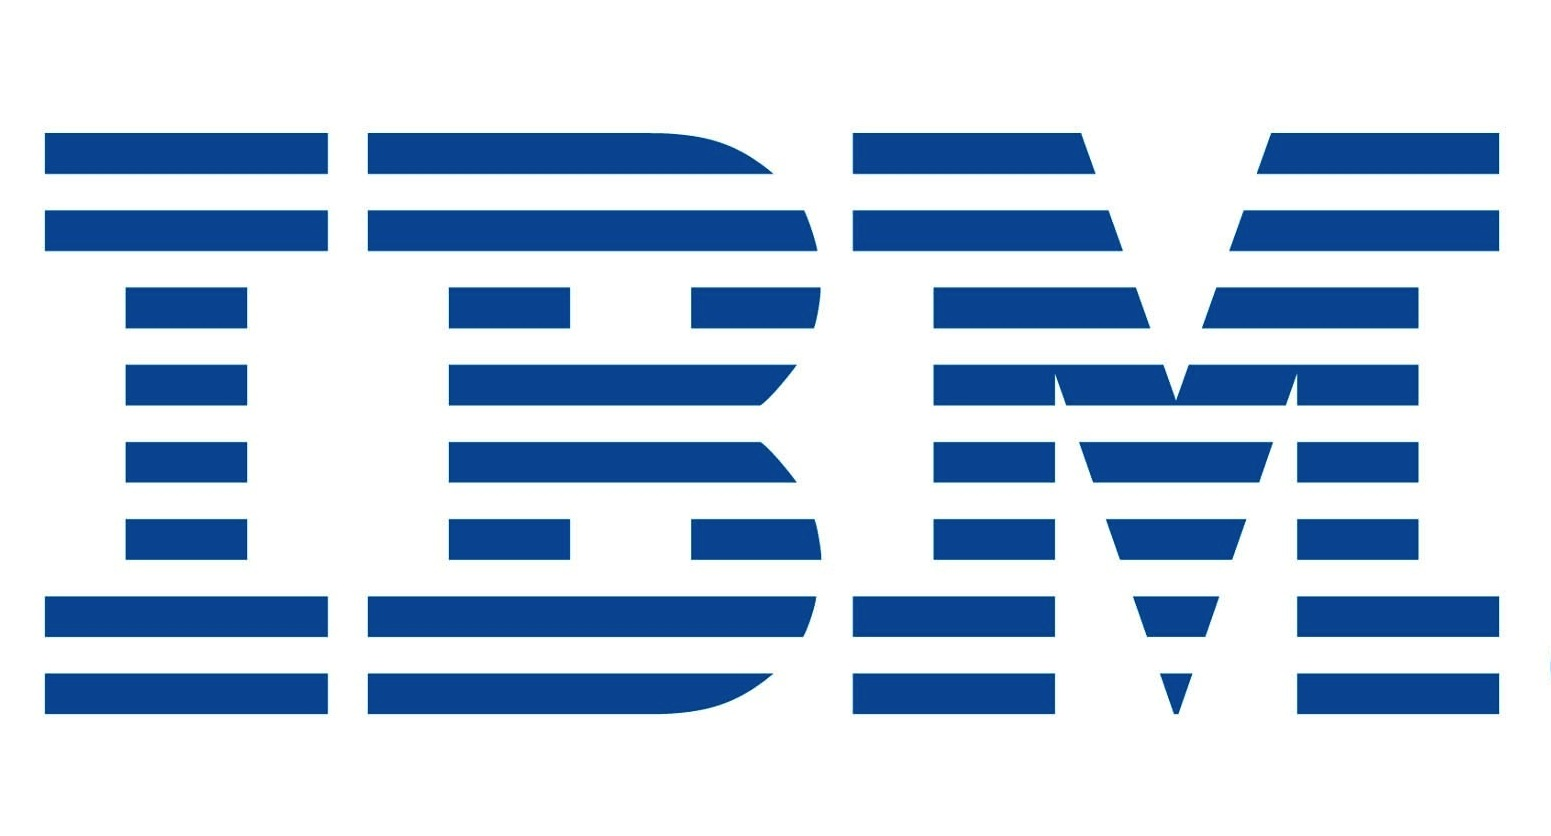 ibm top products